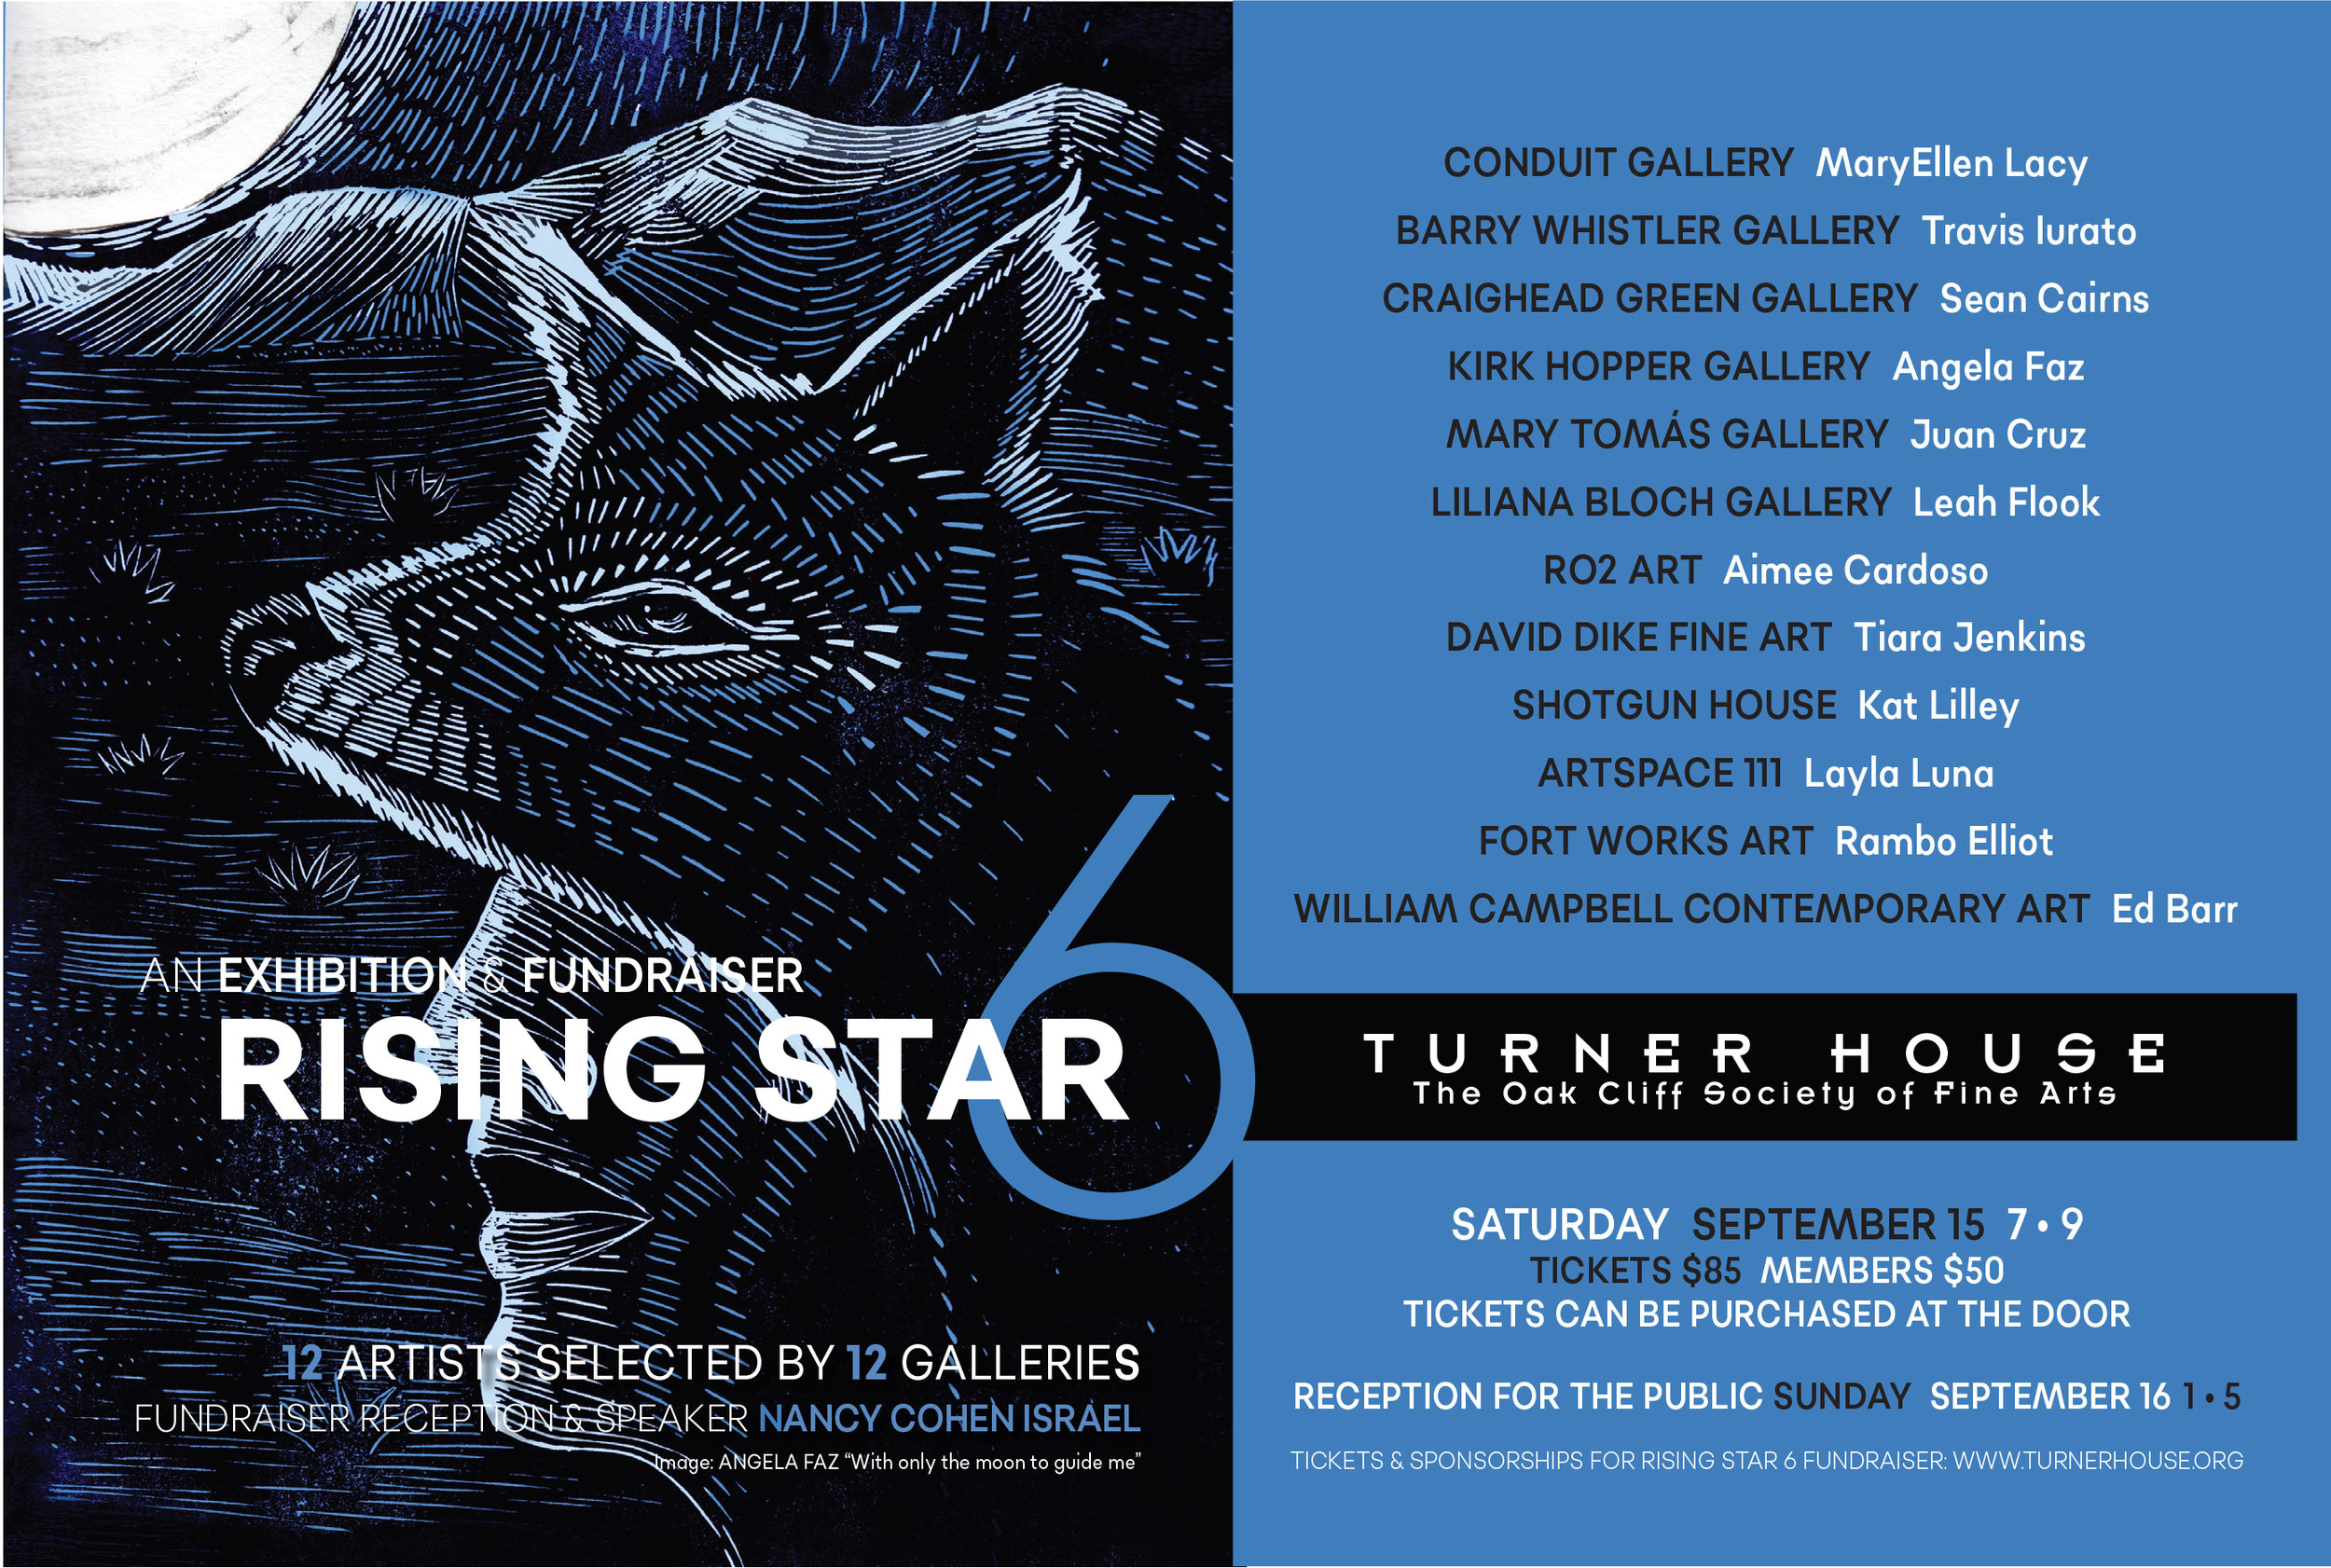 RISING STARS: TURNER HOUSE EXHIBITION TO SHOWCASE EMERGING ARTISTS.jpg